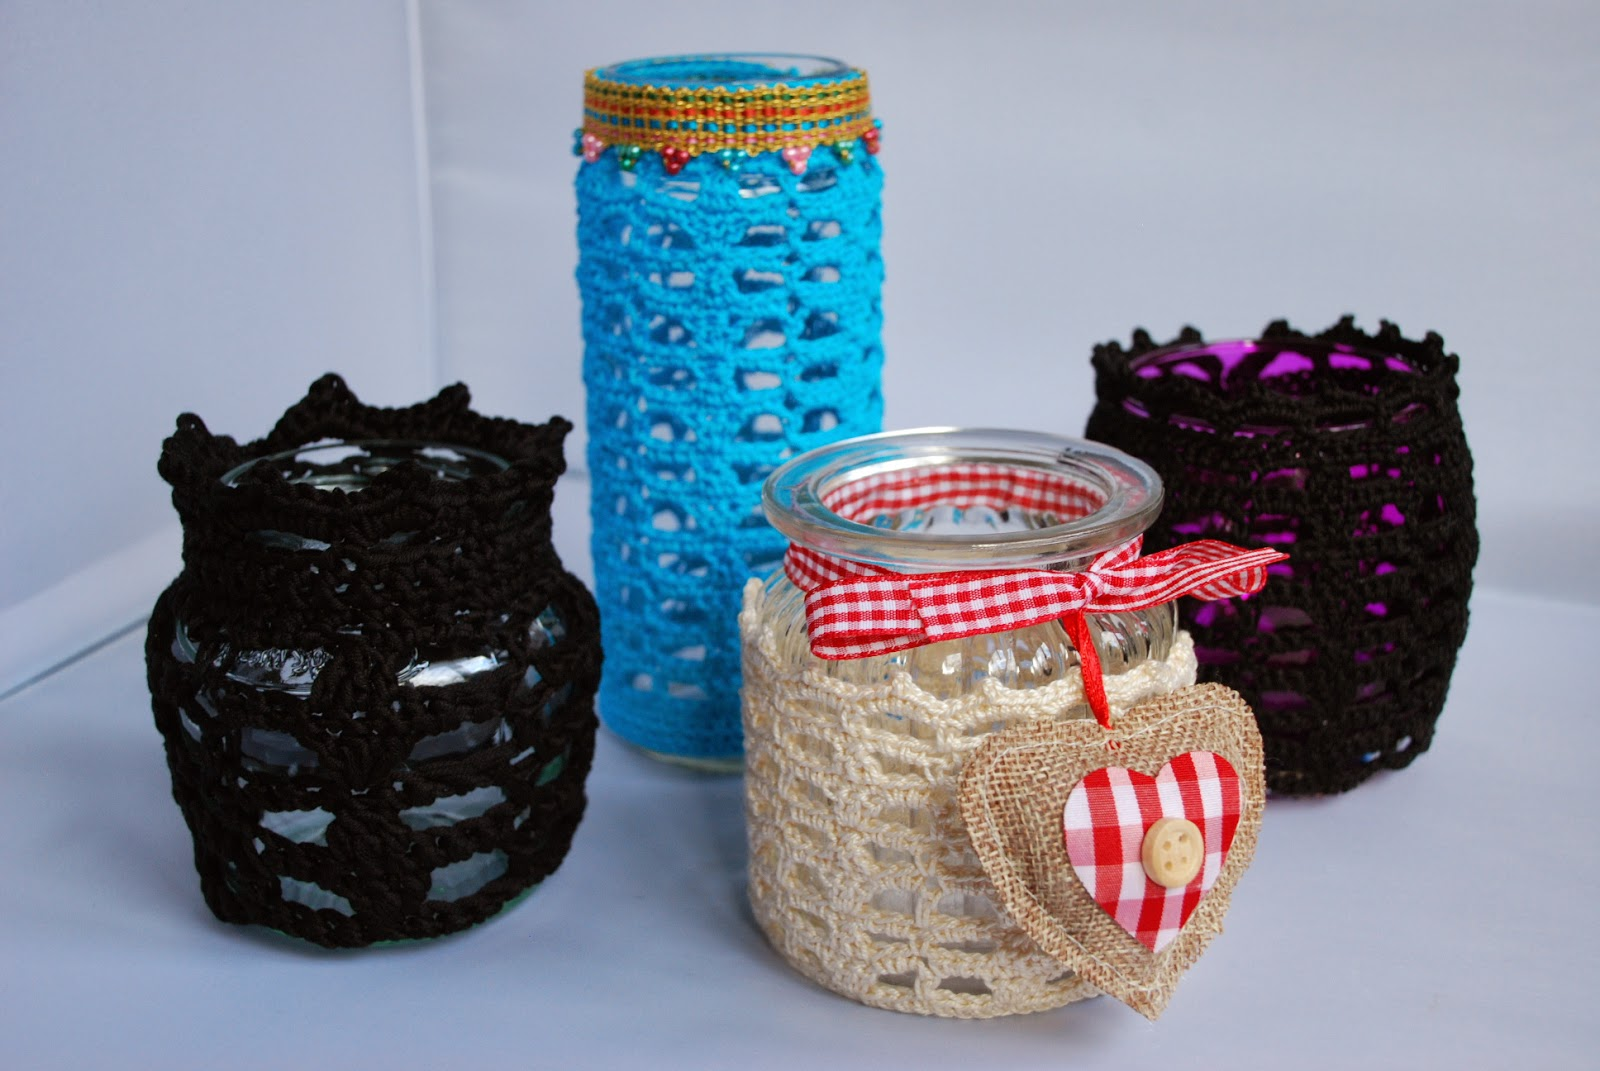 Crochet votive jar cosy pattern and tutorial: image of Moroccan inspired crochet votive jar cosy by Amjaylou